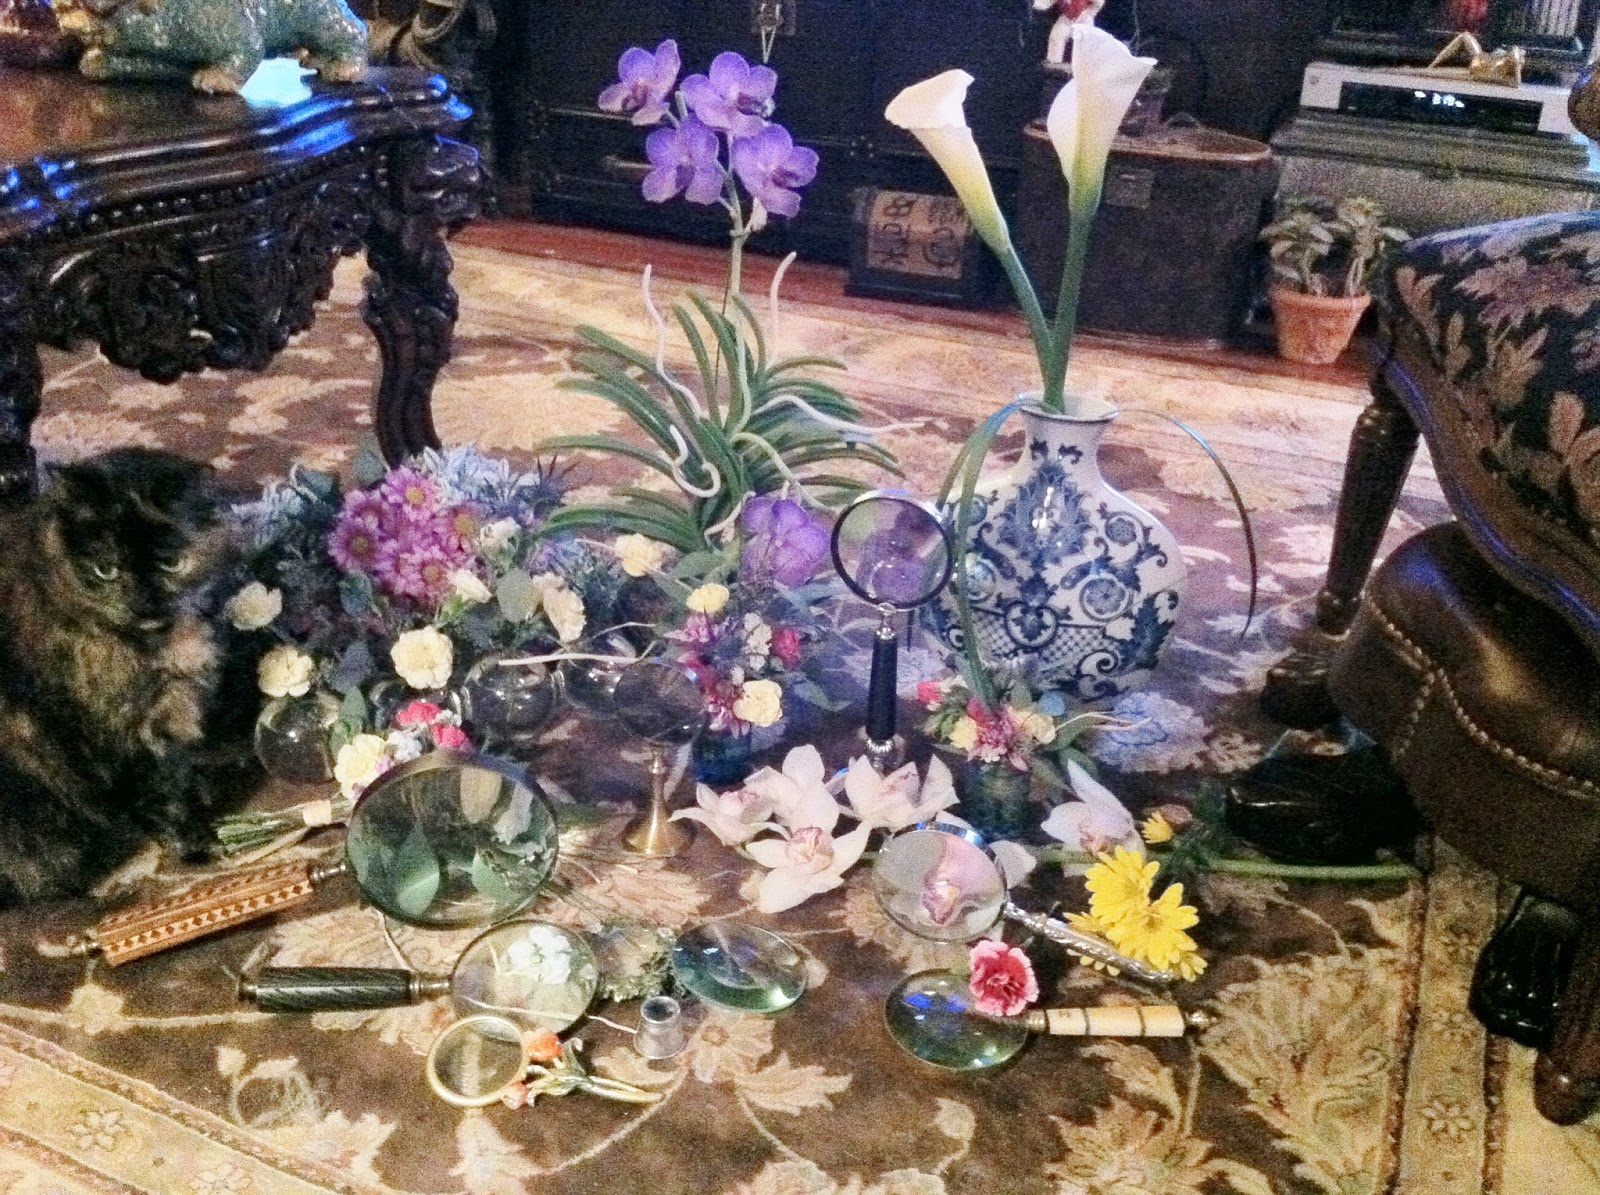 The enchanted petal for the love of cats penelope cat flowers and magnifying glasses stein your florist co izmirmasajfo